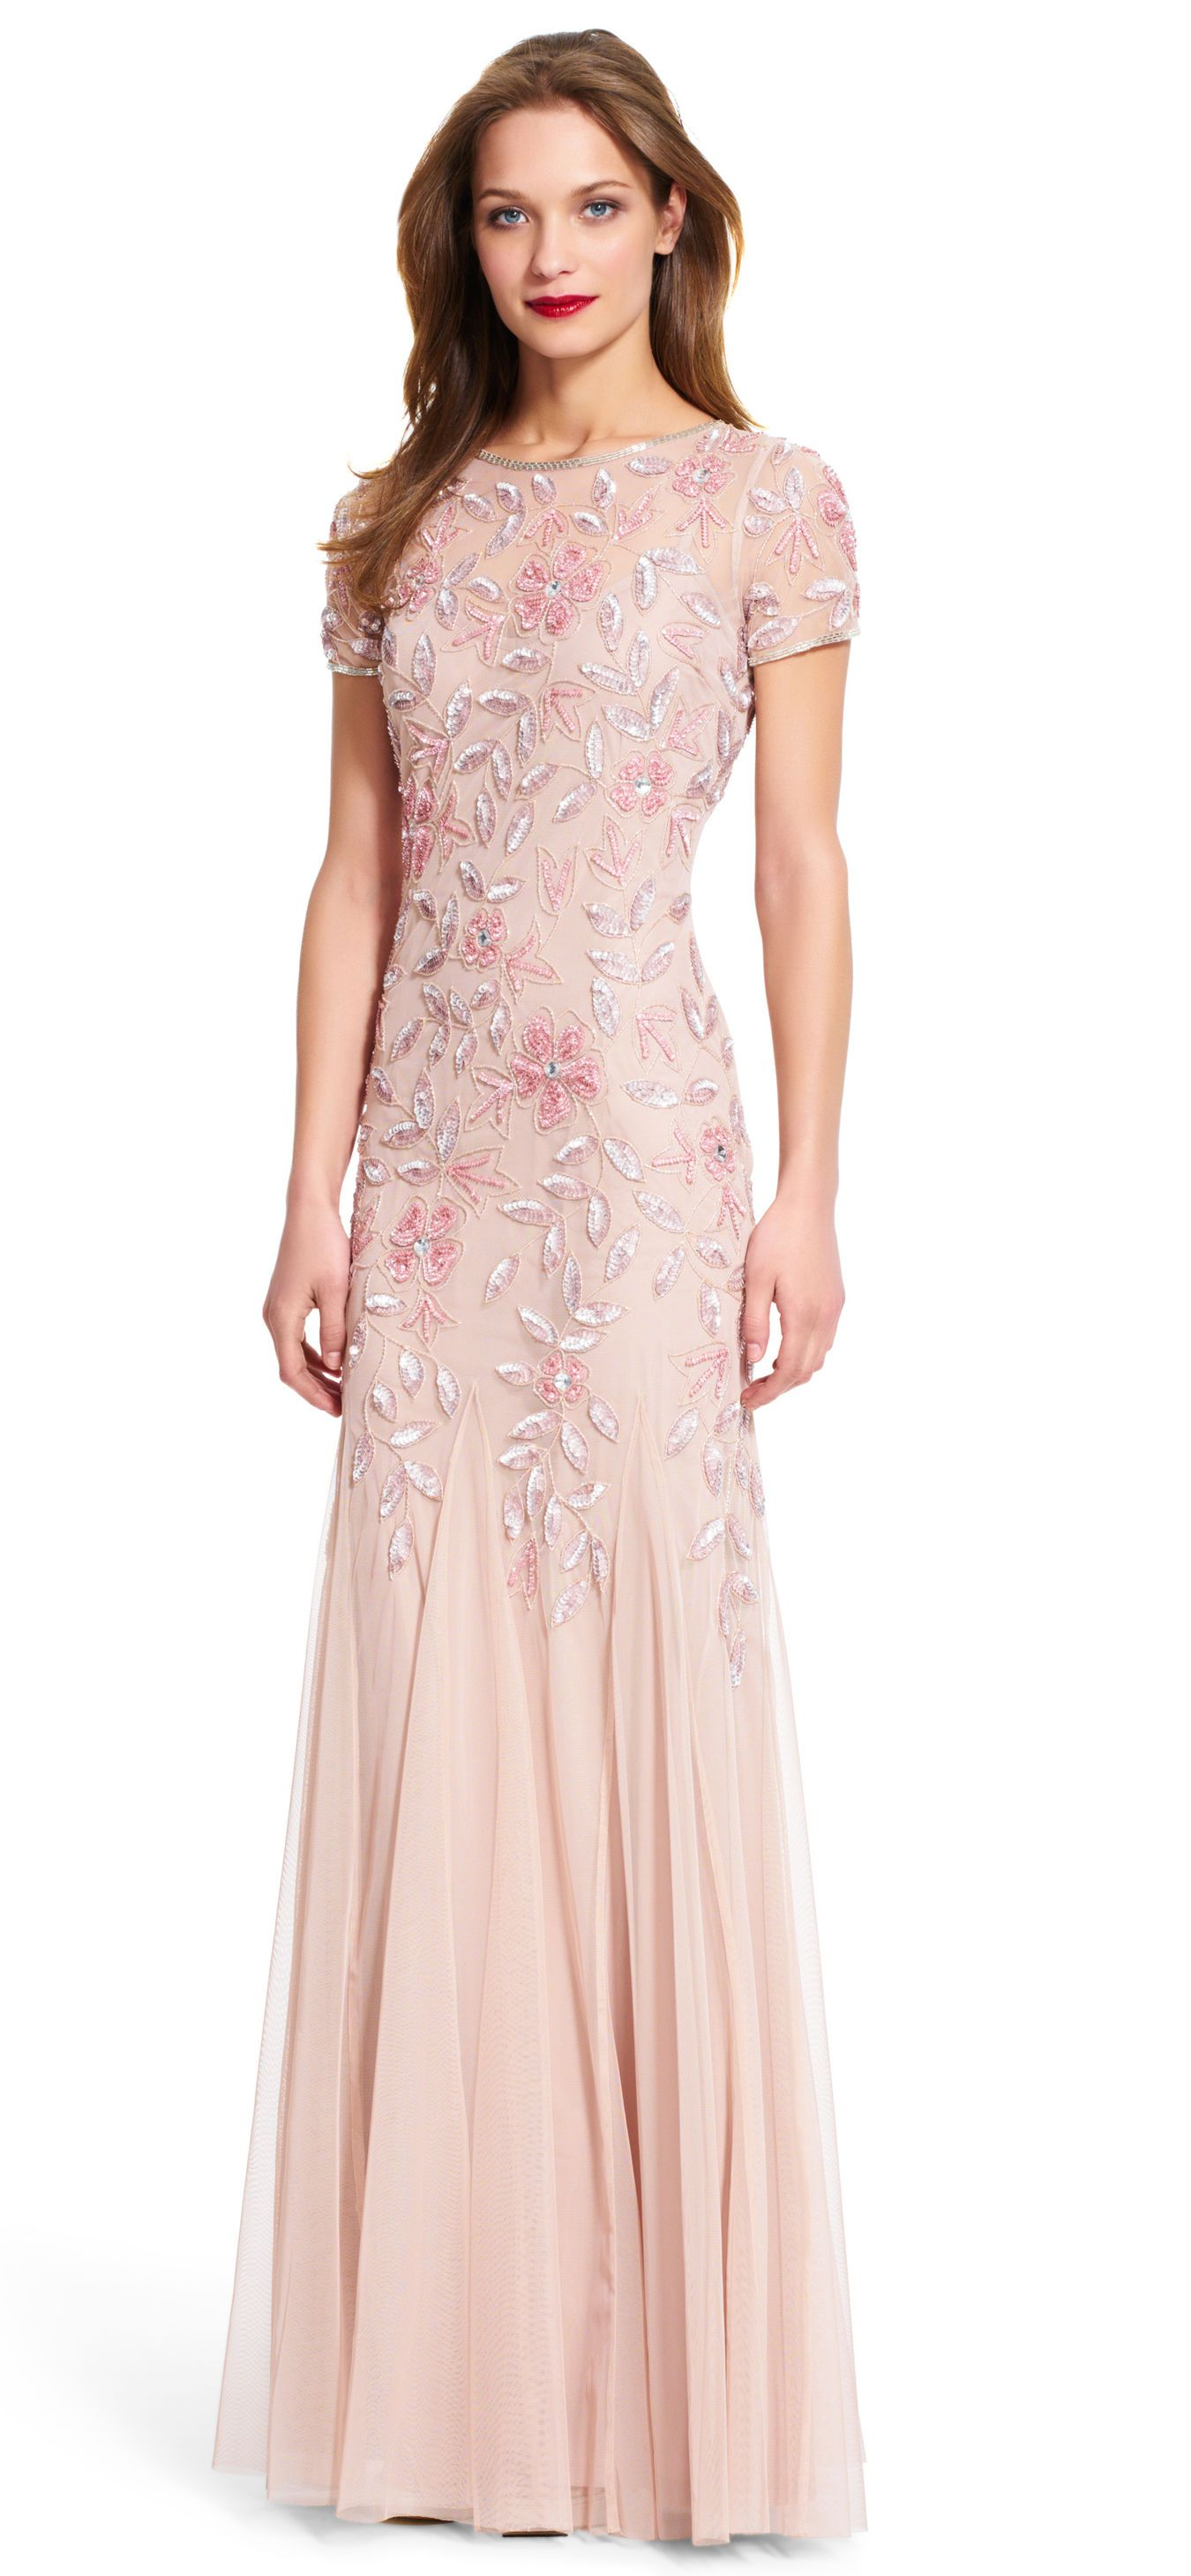 Floral Beaded Godet Gown with Short Sleeves | Pinterest